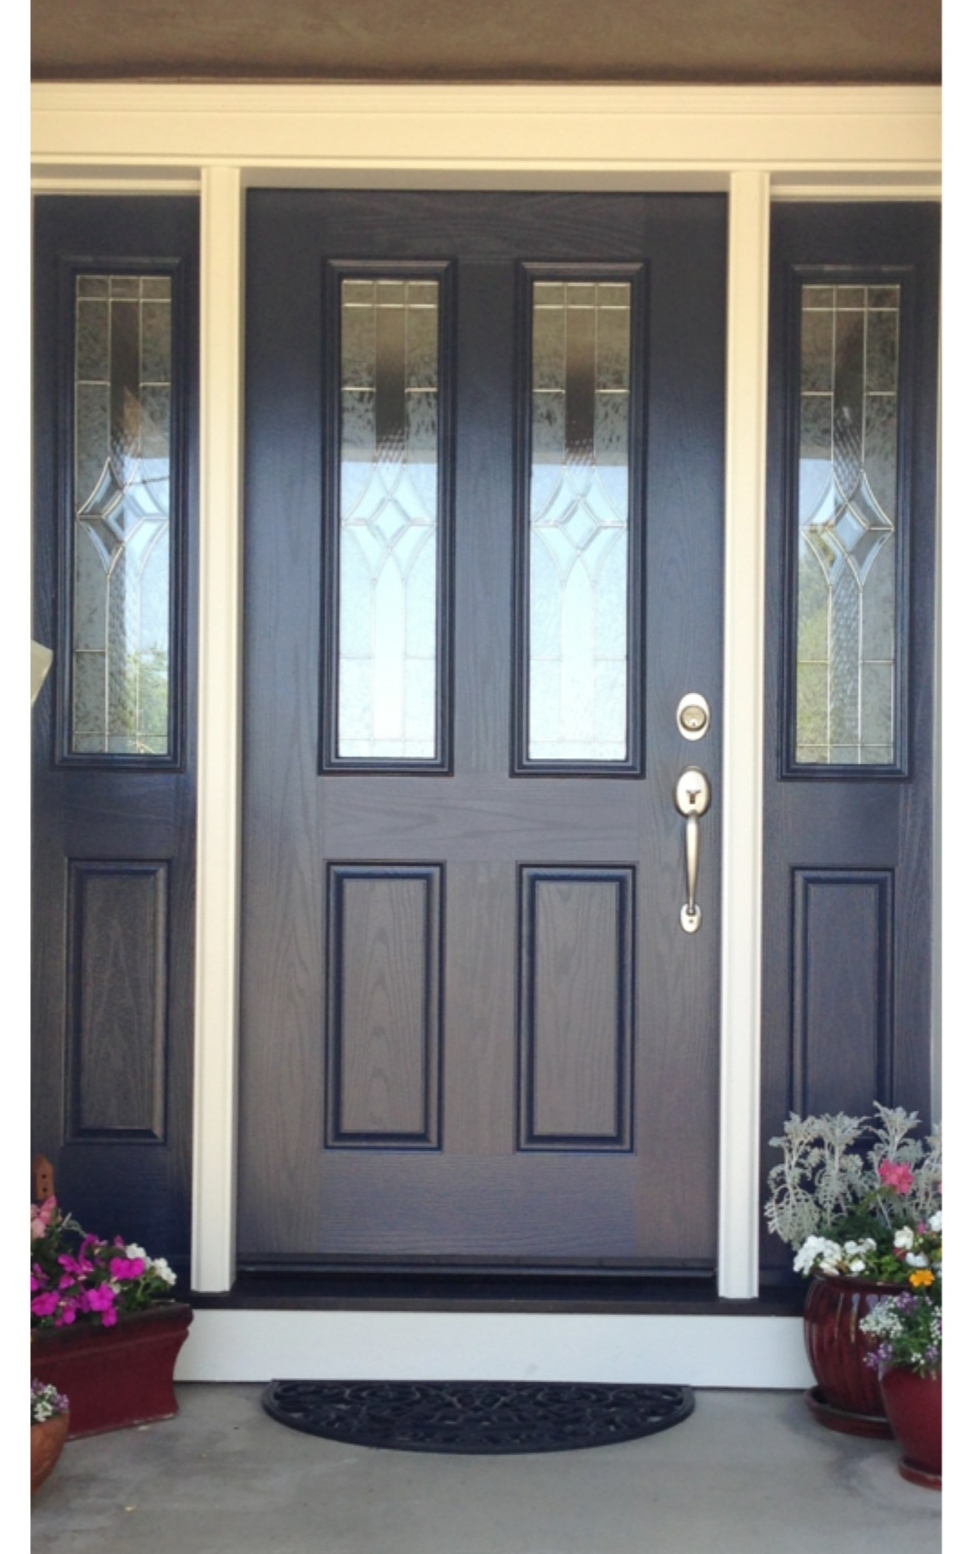 Marie antoinette interiors for Navy blue front door